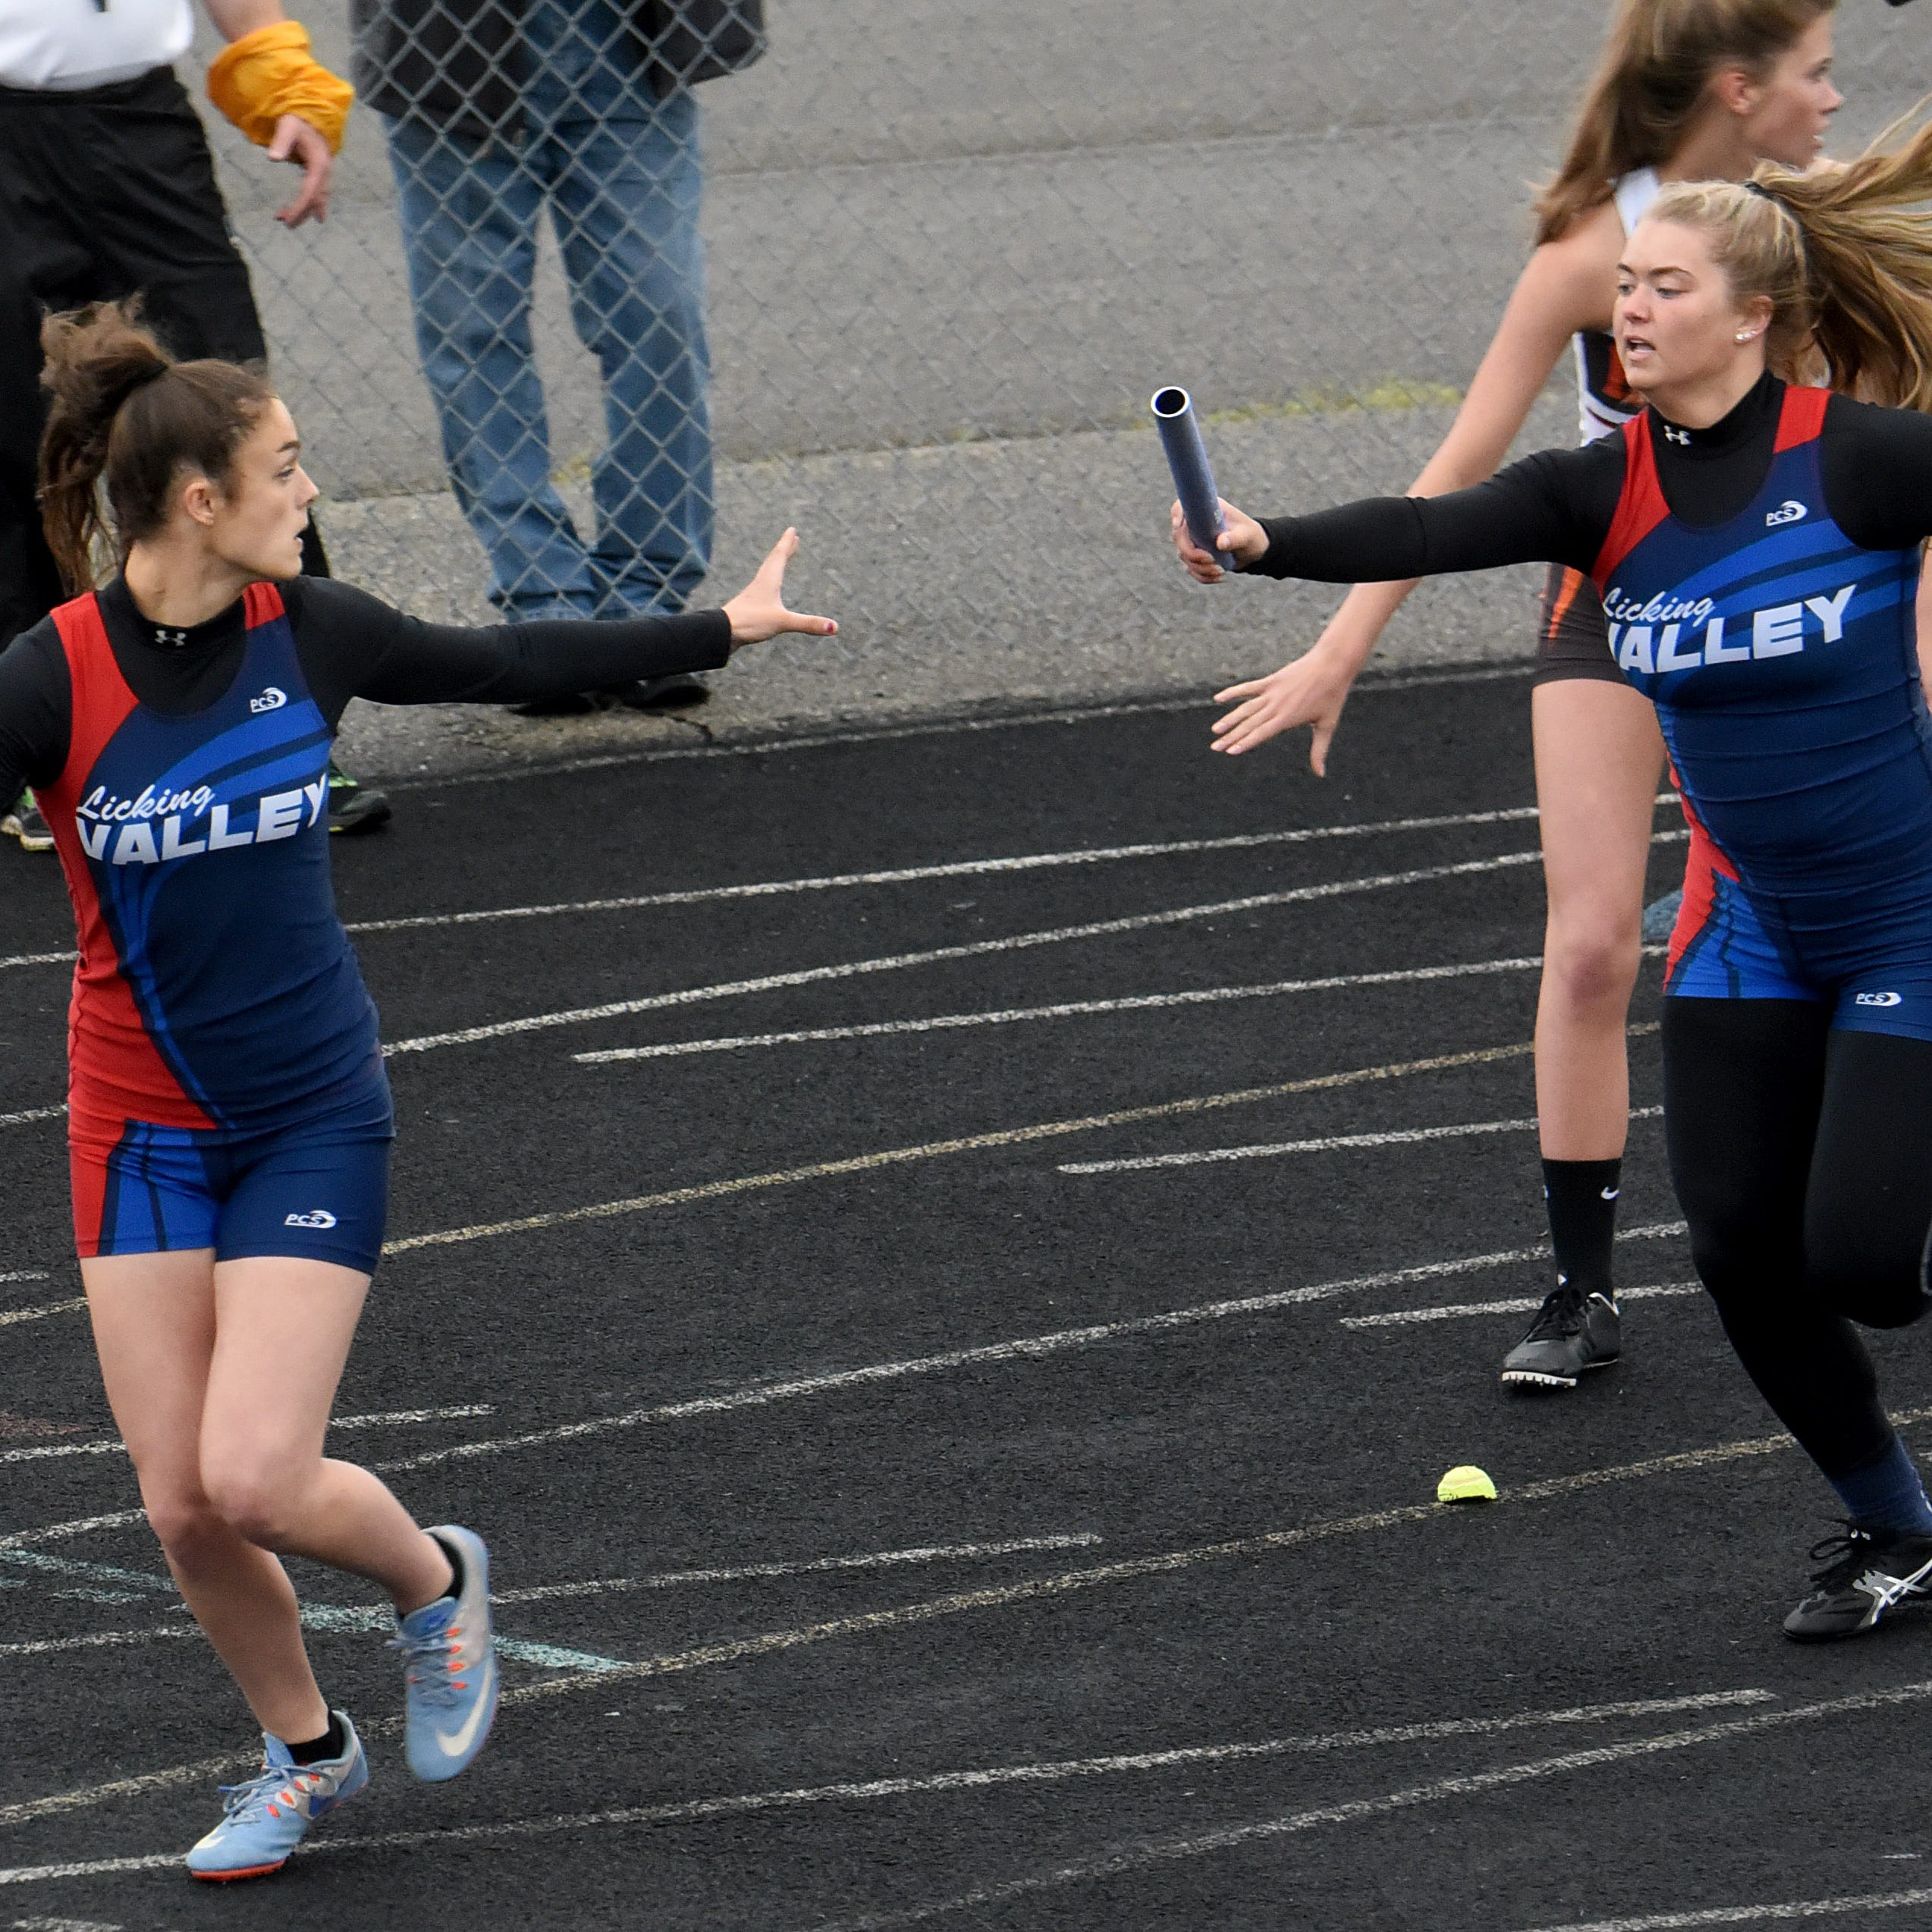 Roundup: Records fall on track at Licking Valley Invitational